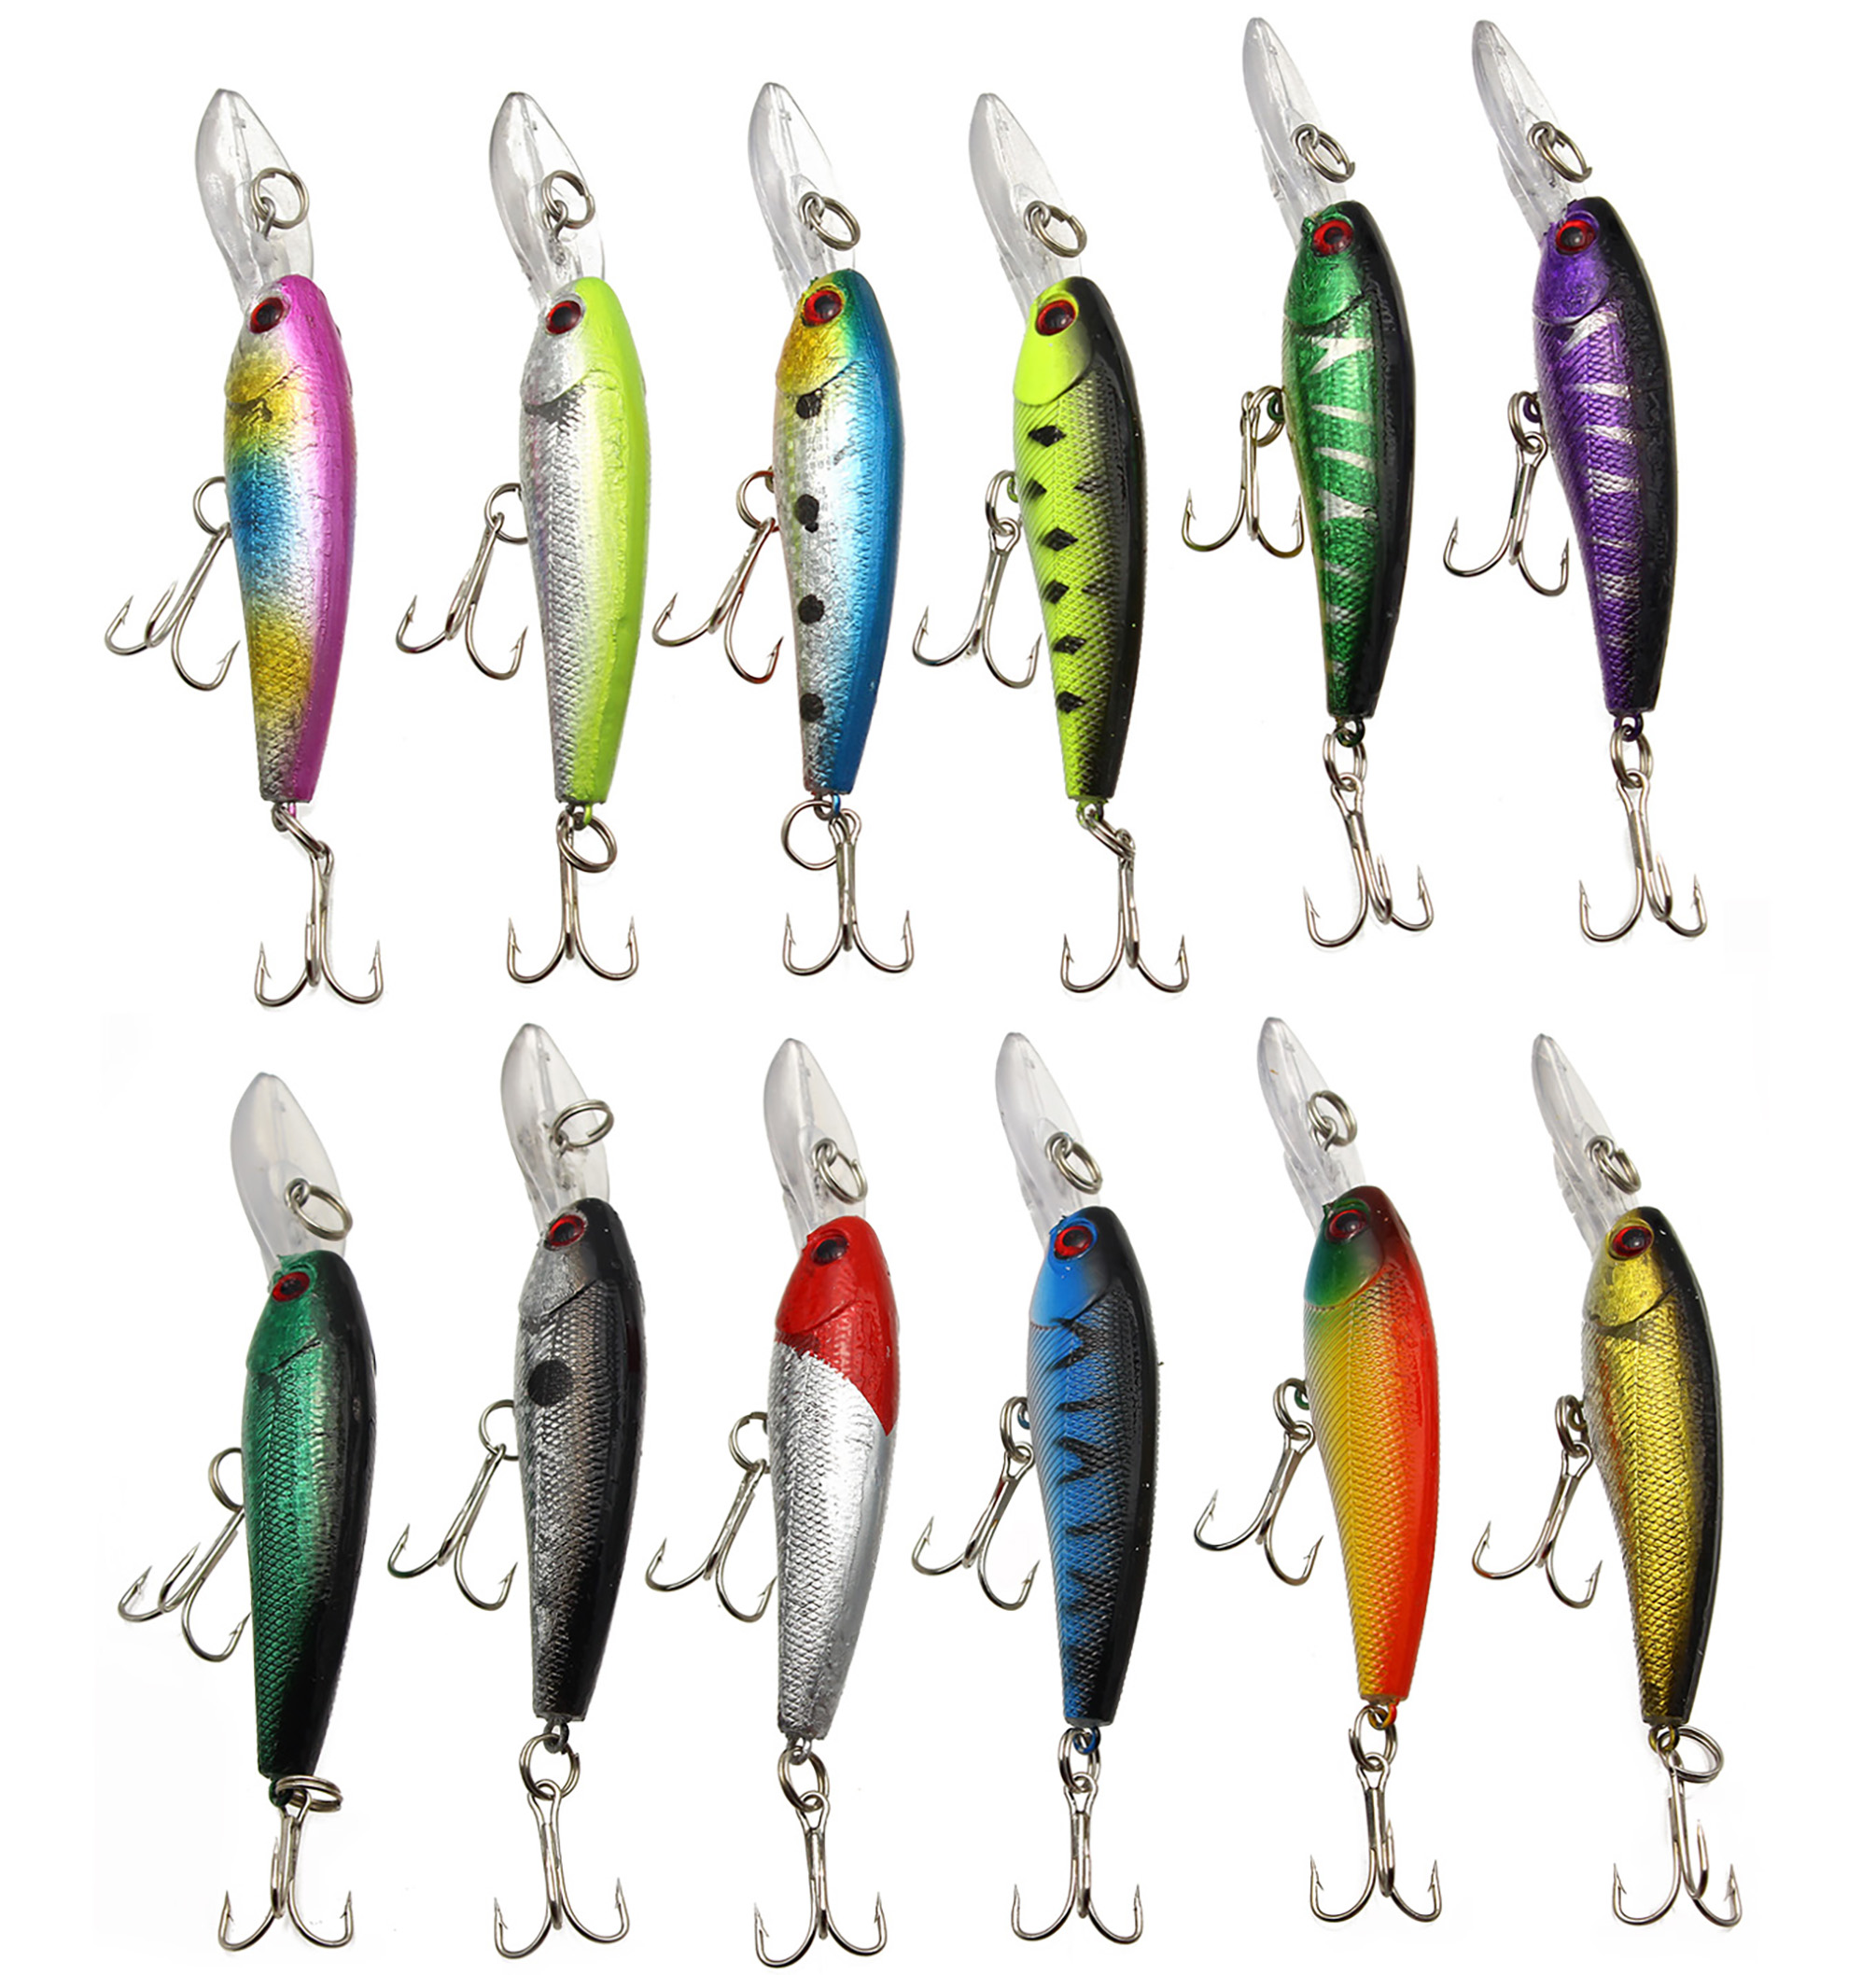 LotFancy 12 PCS 3.6 Inches Fishing Lures Crankbaits Hooks Minnow Baits Tackle by